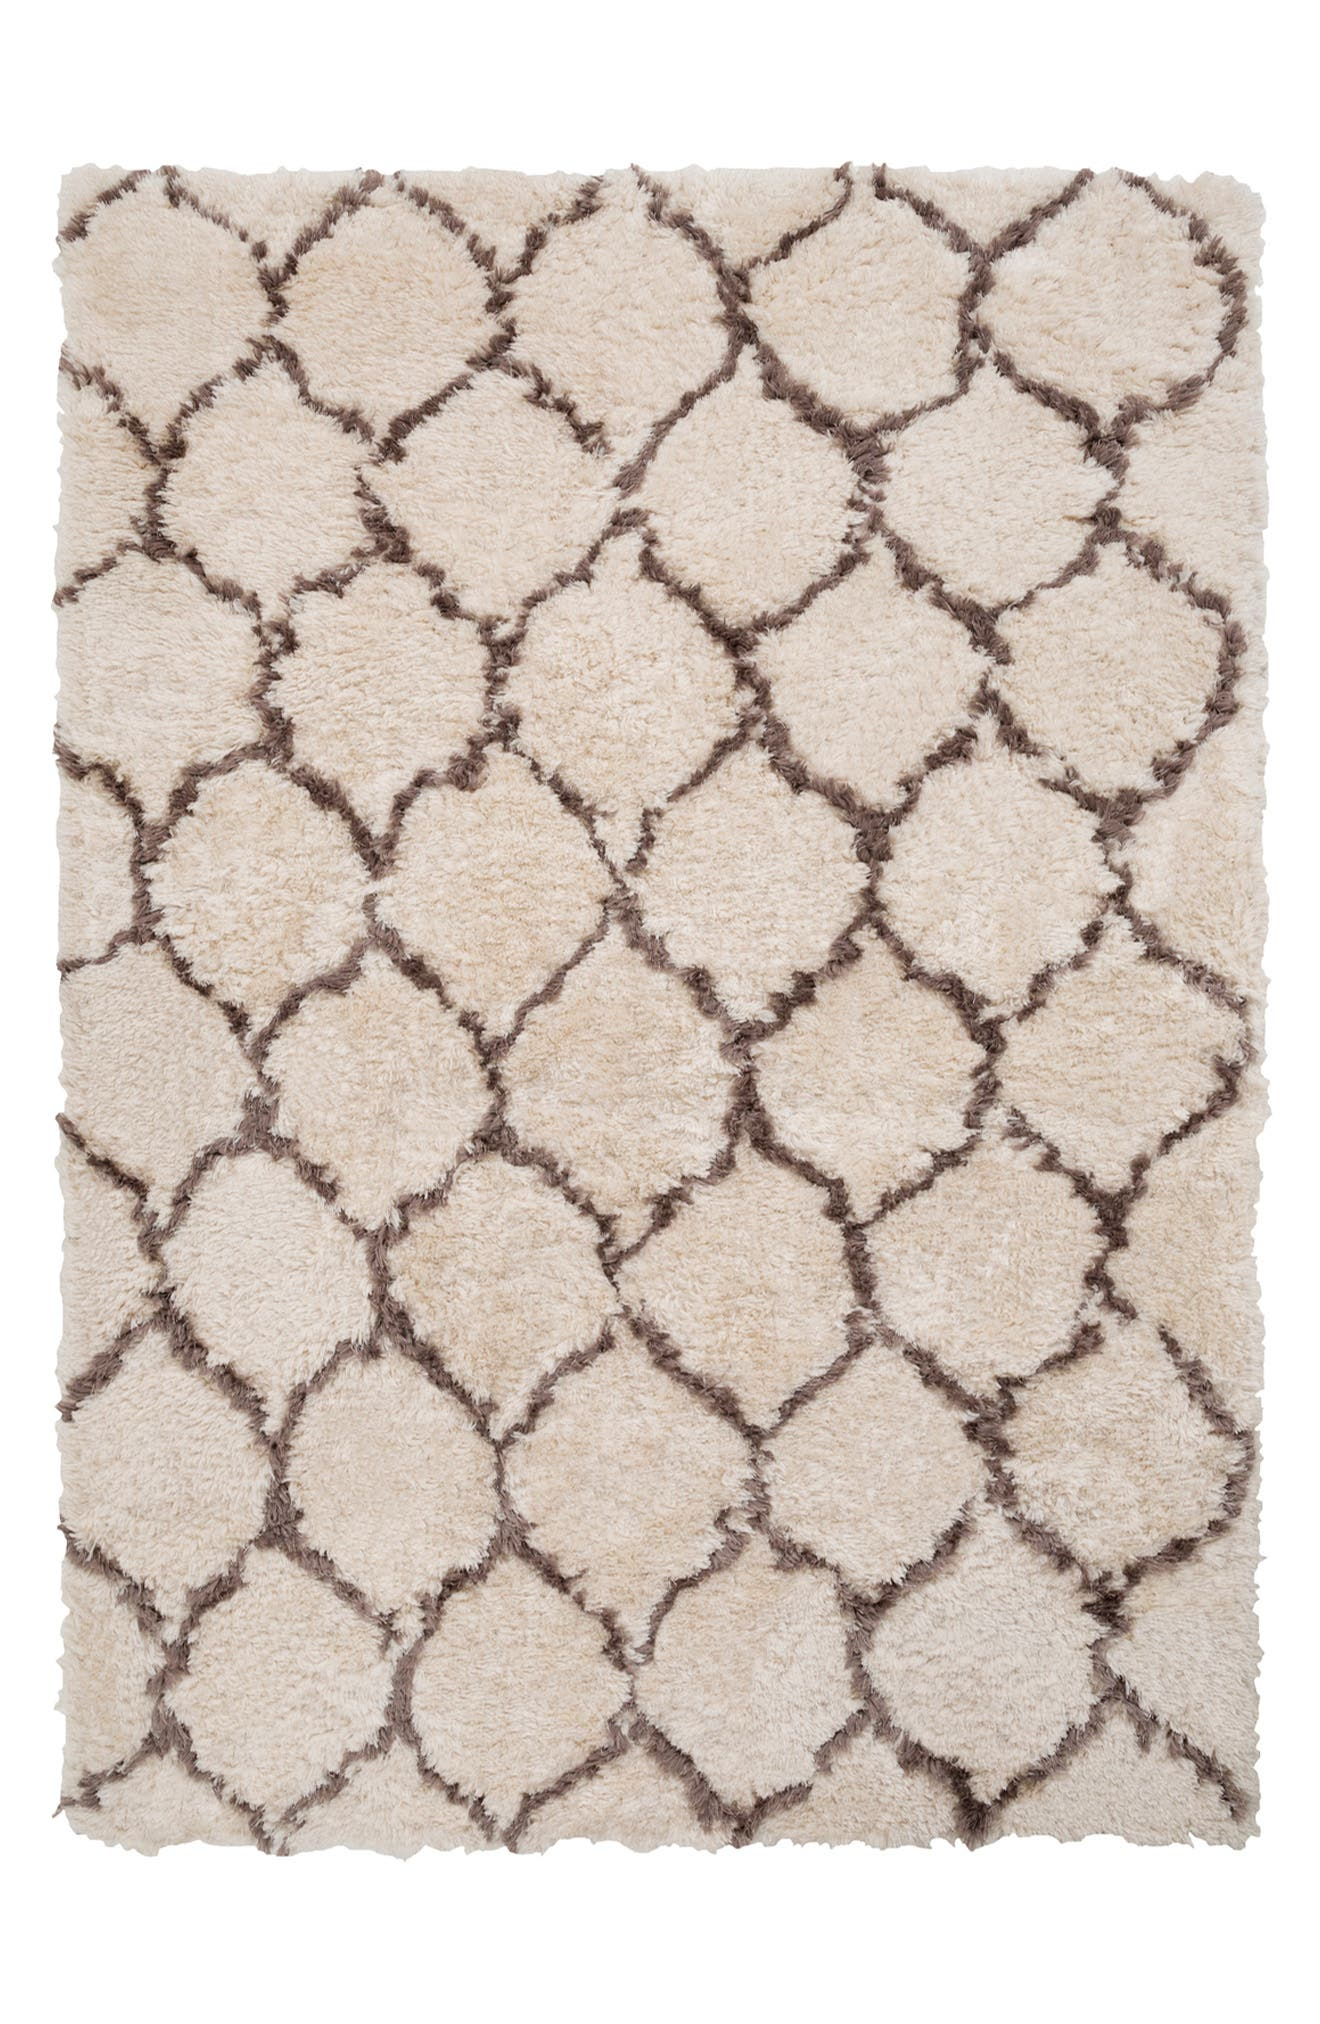 'Scout' Hand Tufted Rug,                             Alternate thumbnail 3, color,                             020